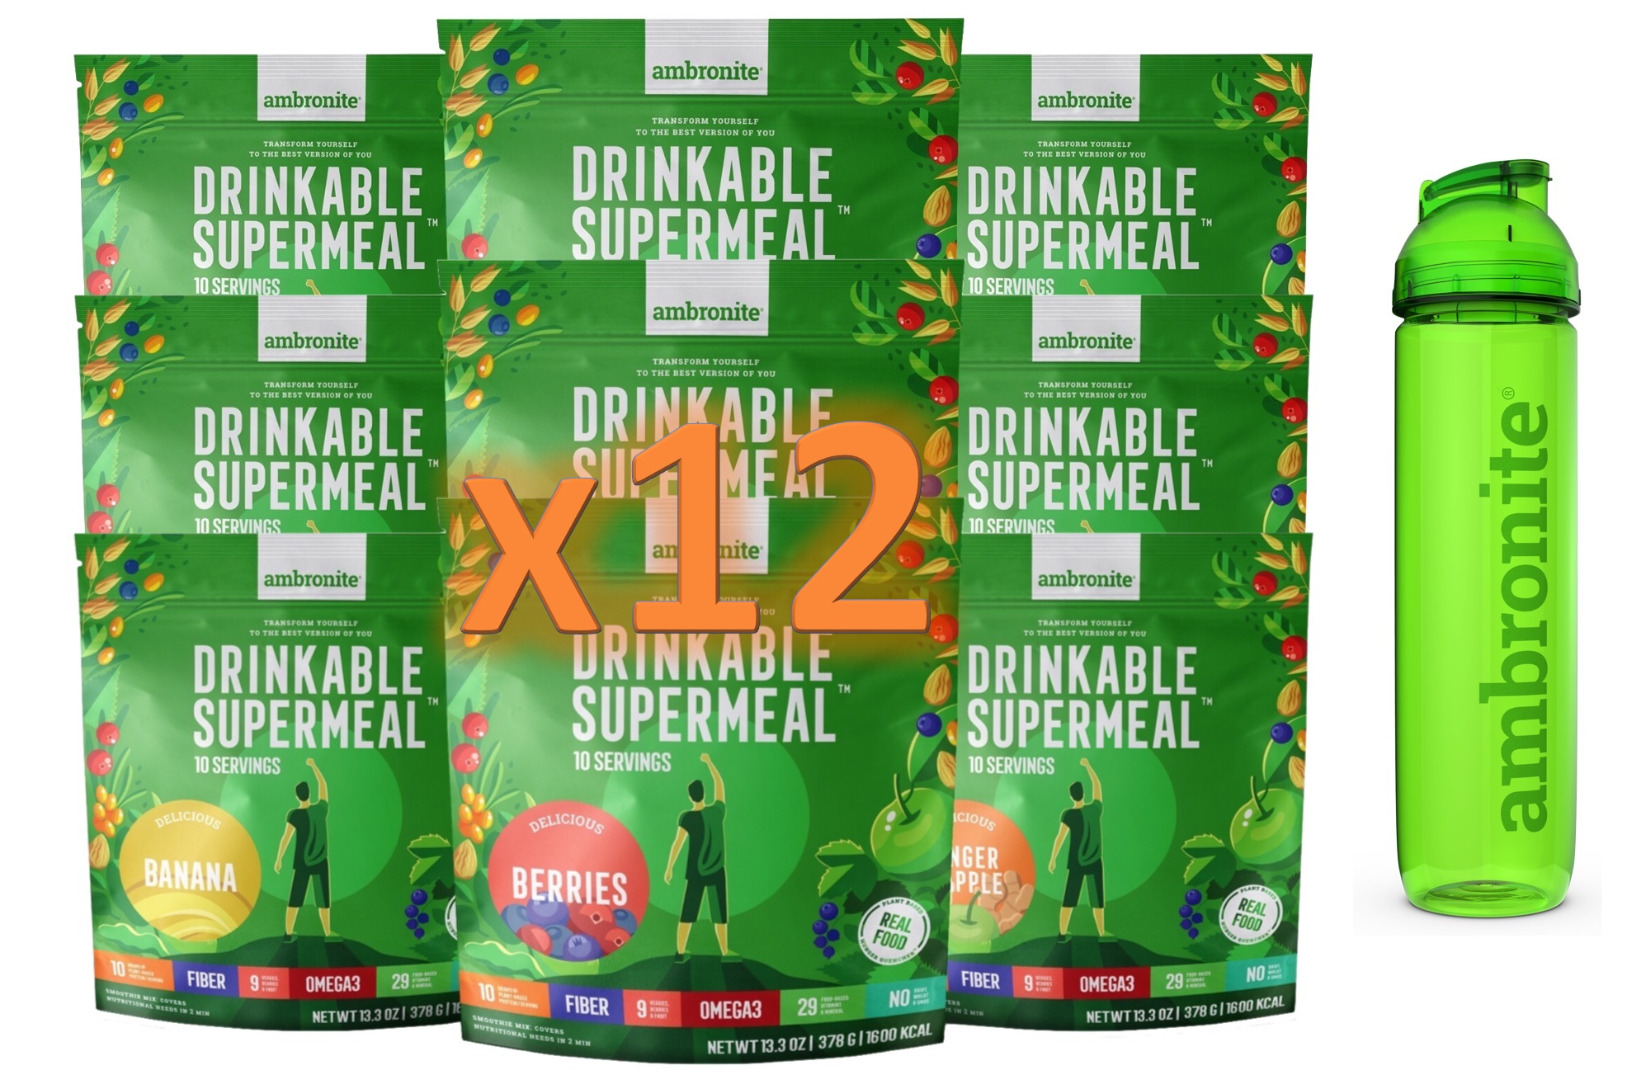 Gift Card For One Year's Worth Of Ambronite Drinkable Supermeals